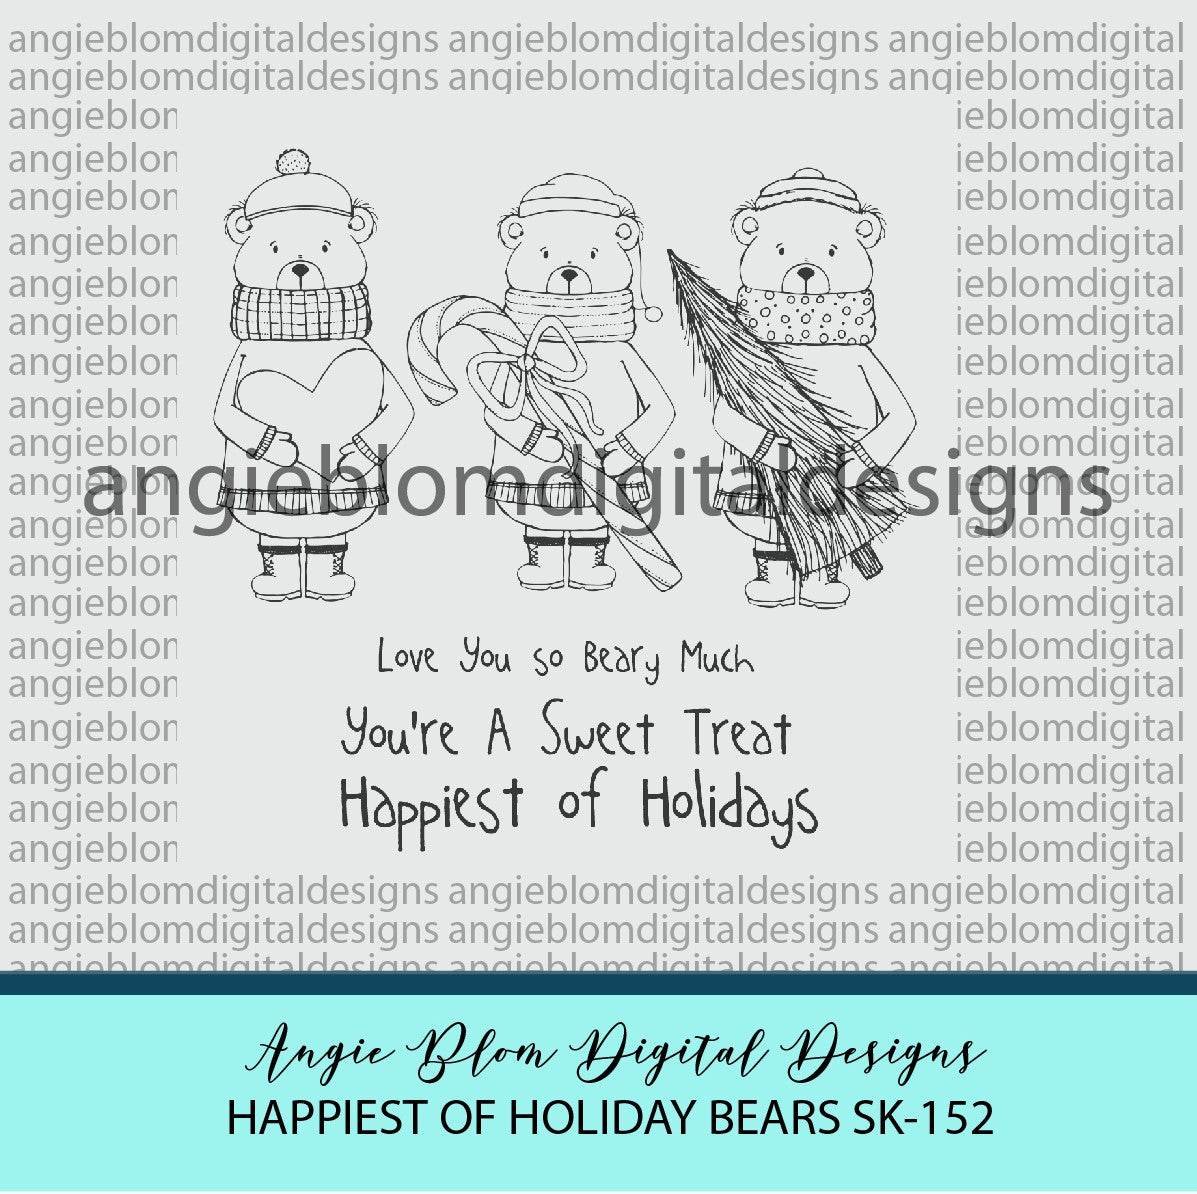 Happiest of Holiday Bears